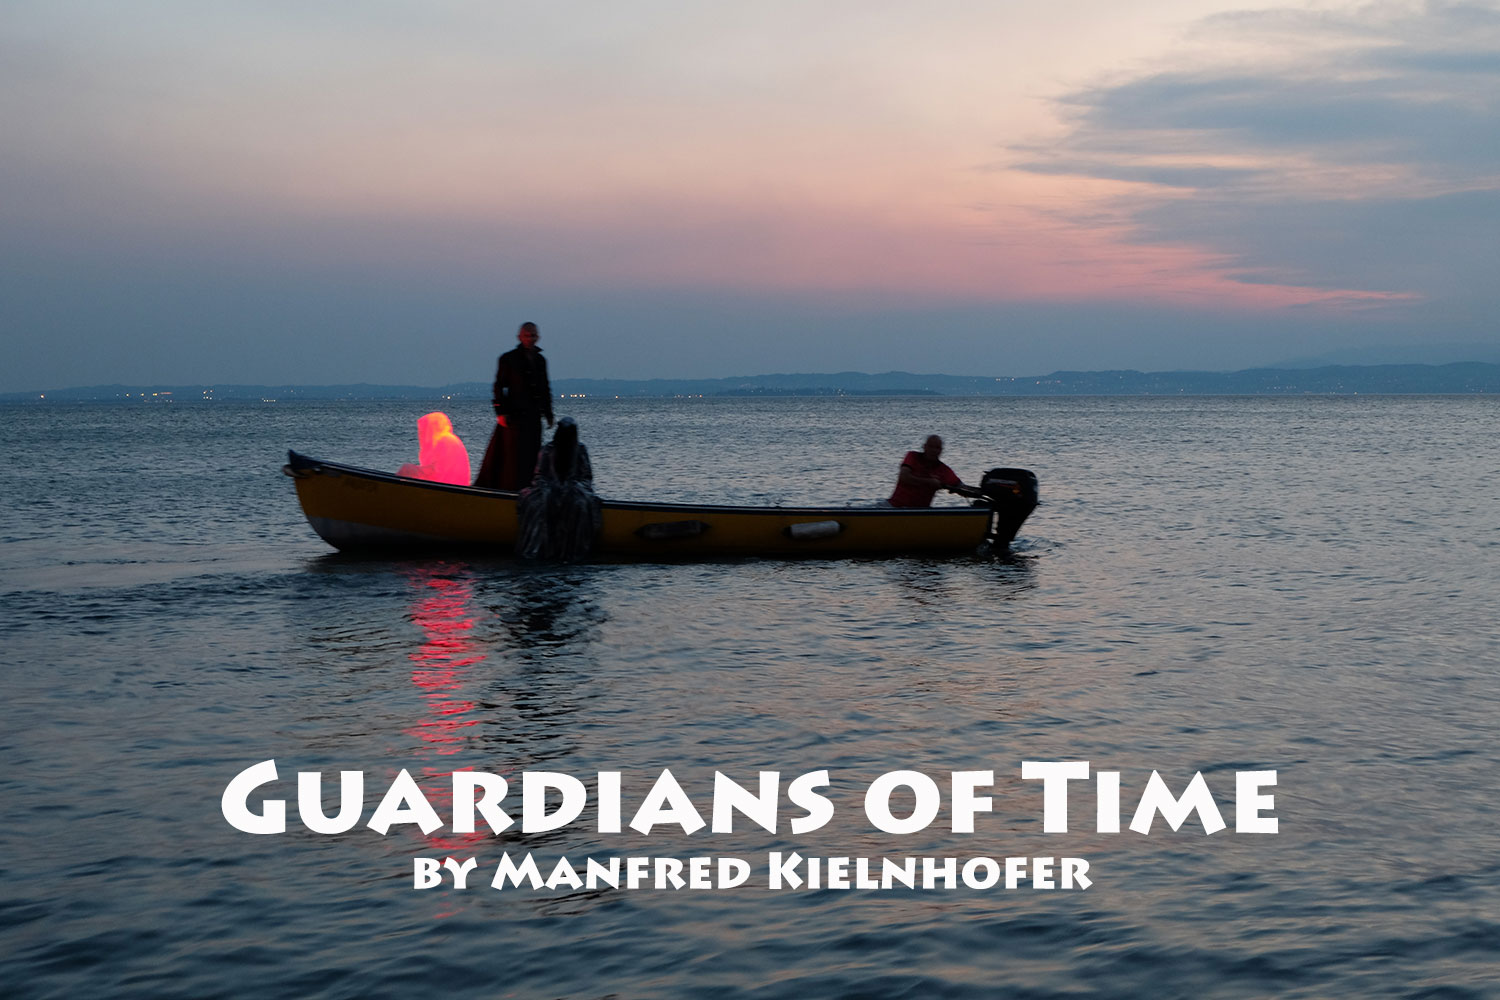 lazise-largo-de-guarda-italia--kouba-designkooperative-austria-guardians-of-time-manfred-kili-kielnhofer-contemporary-art-design-arts-arte-sculpture-theater-foto-film-performnce-avalon-ferryman-3789